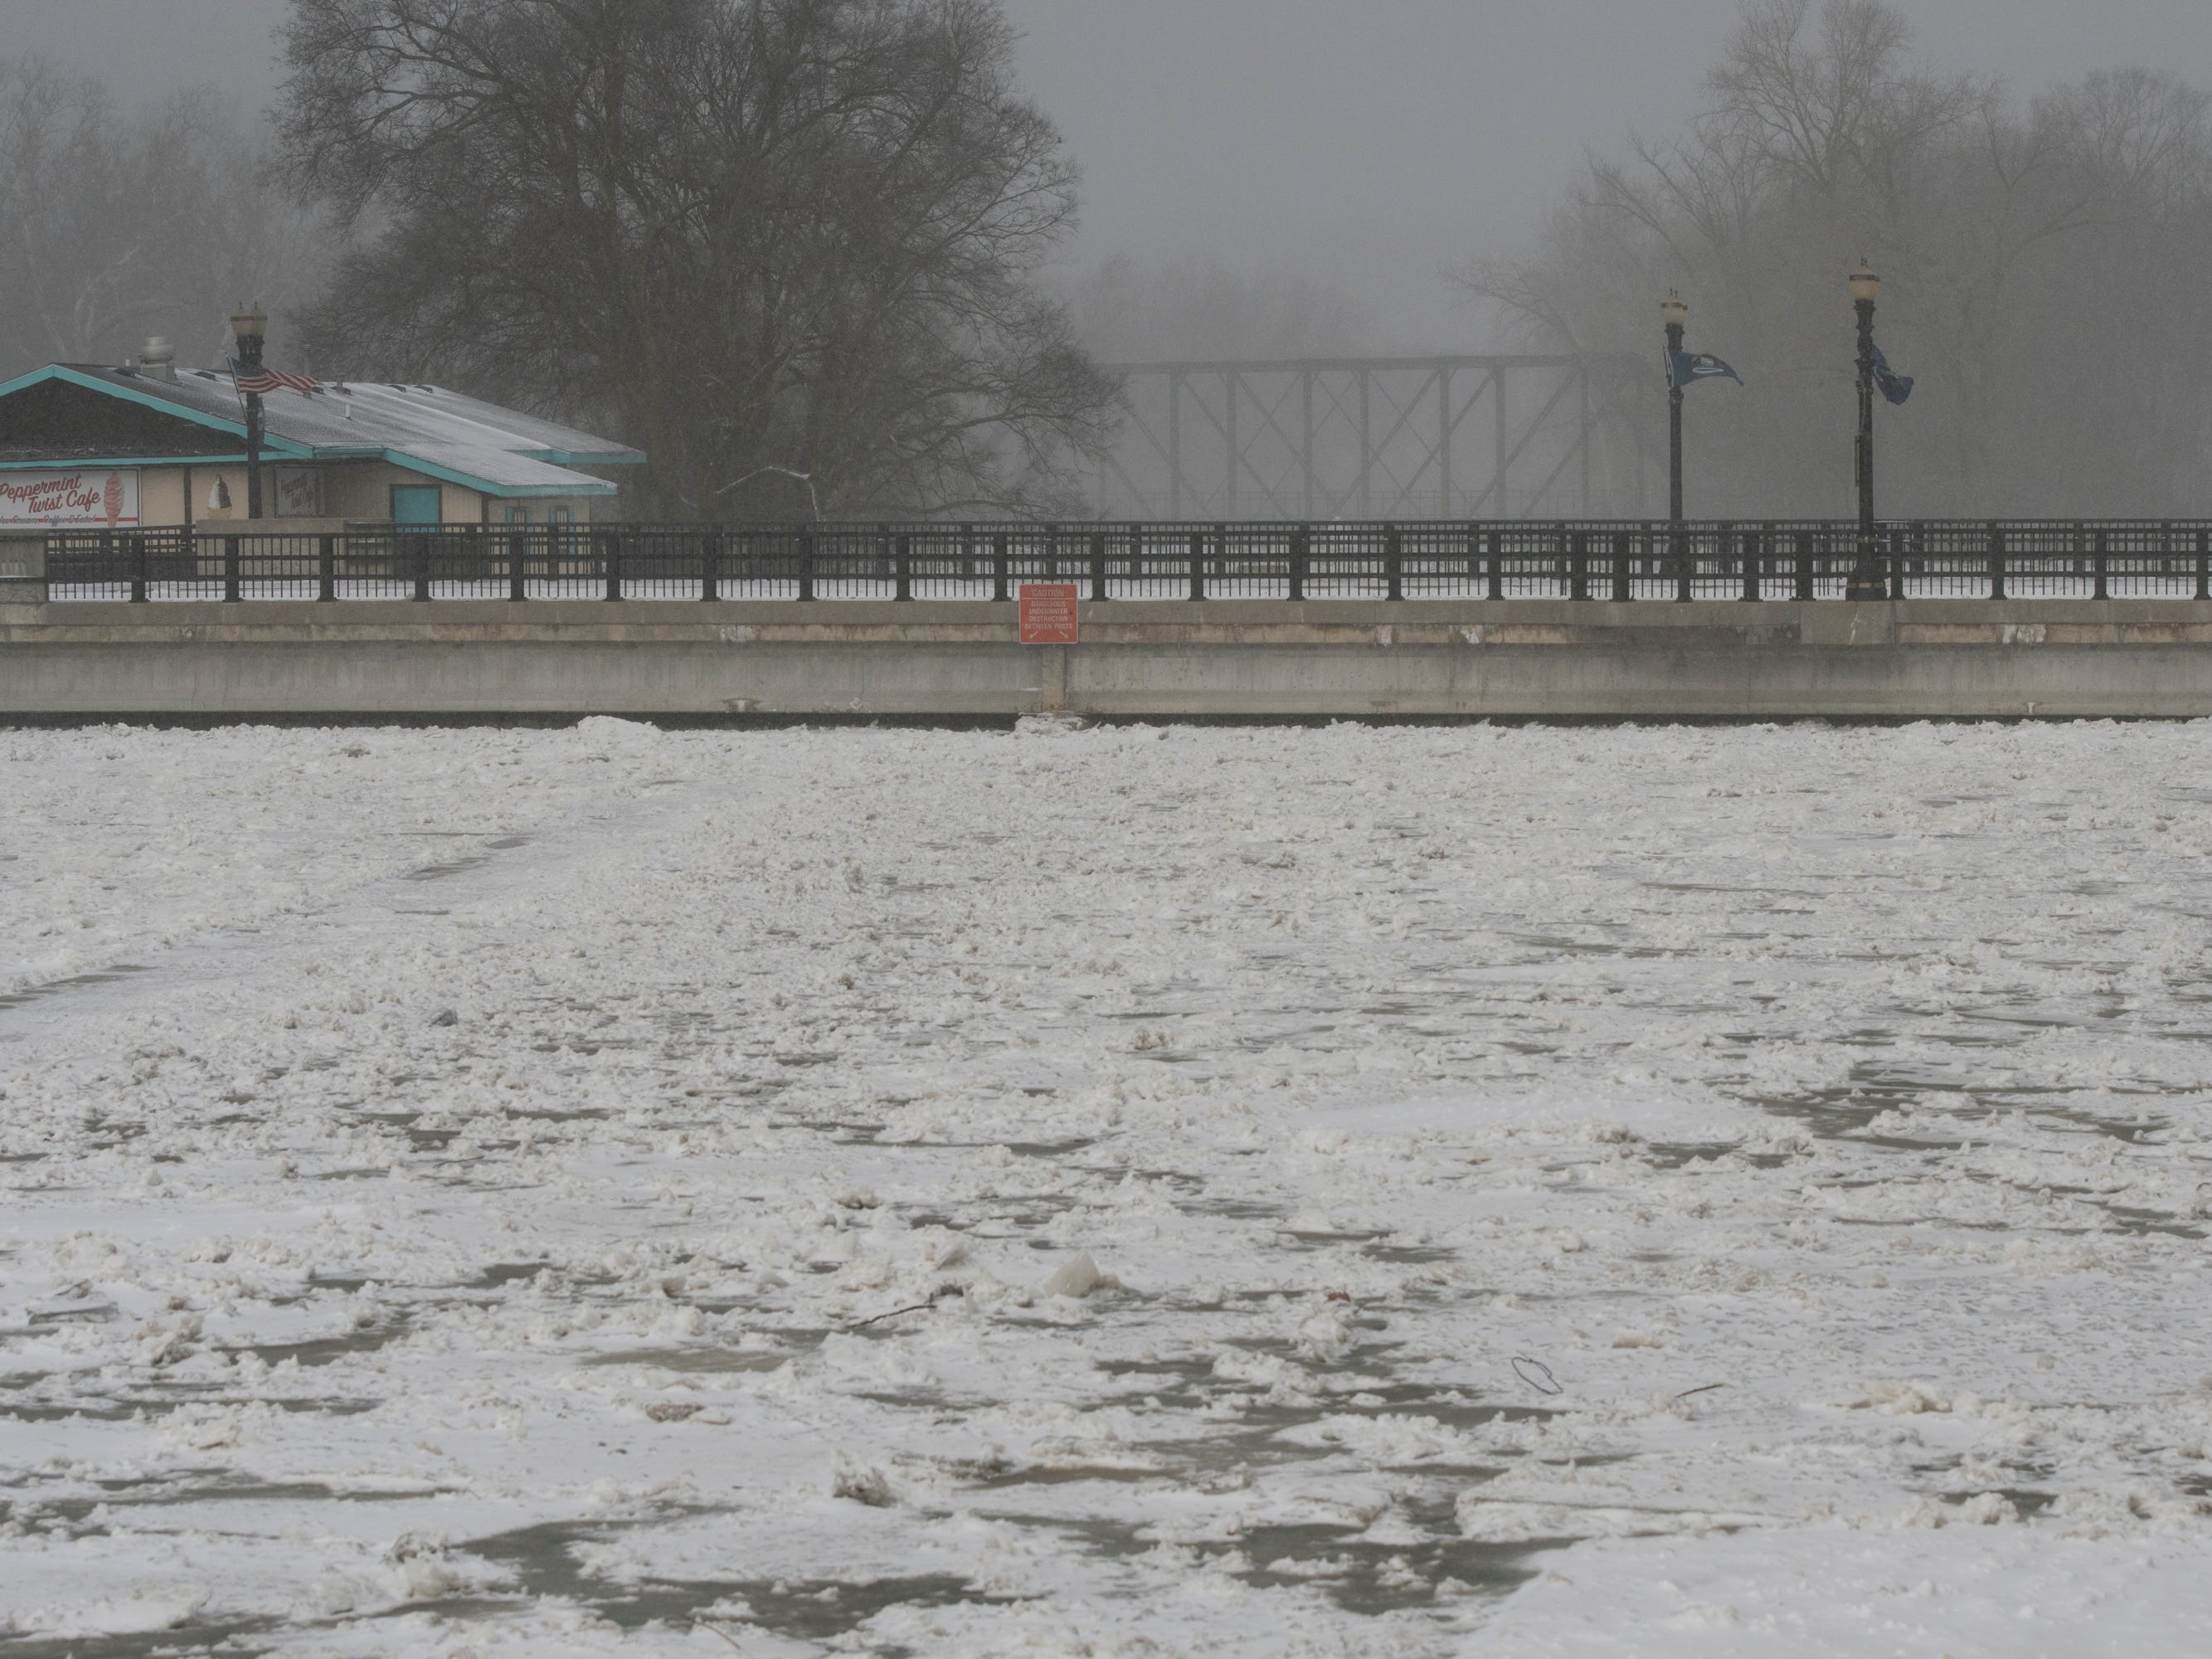 More residents have been evacuated due to rising water levels due to ice jams in the Grand River in downtown Portland.   All three bridges are closed.  [Photo Feb. 8, 2019 by MATTHEW DAE SMITH/Lansing State Journal]